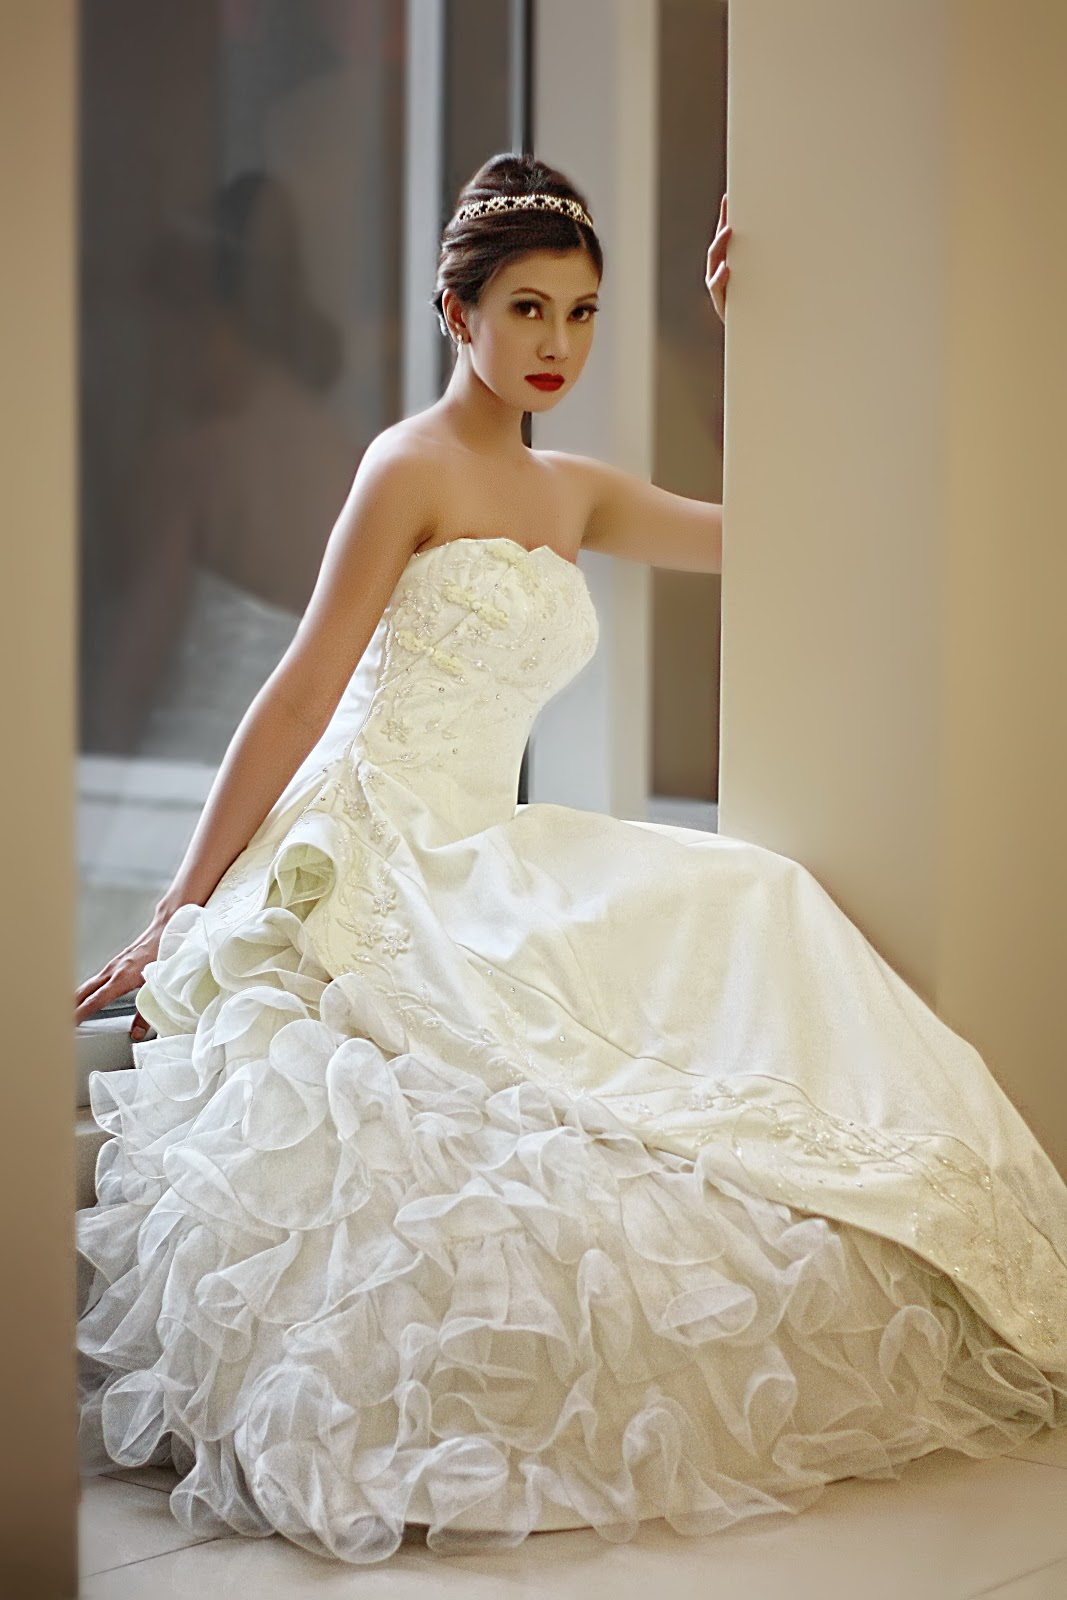 The Bridal Expo Year 9 gathers top Fashion and Wedding